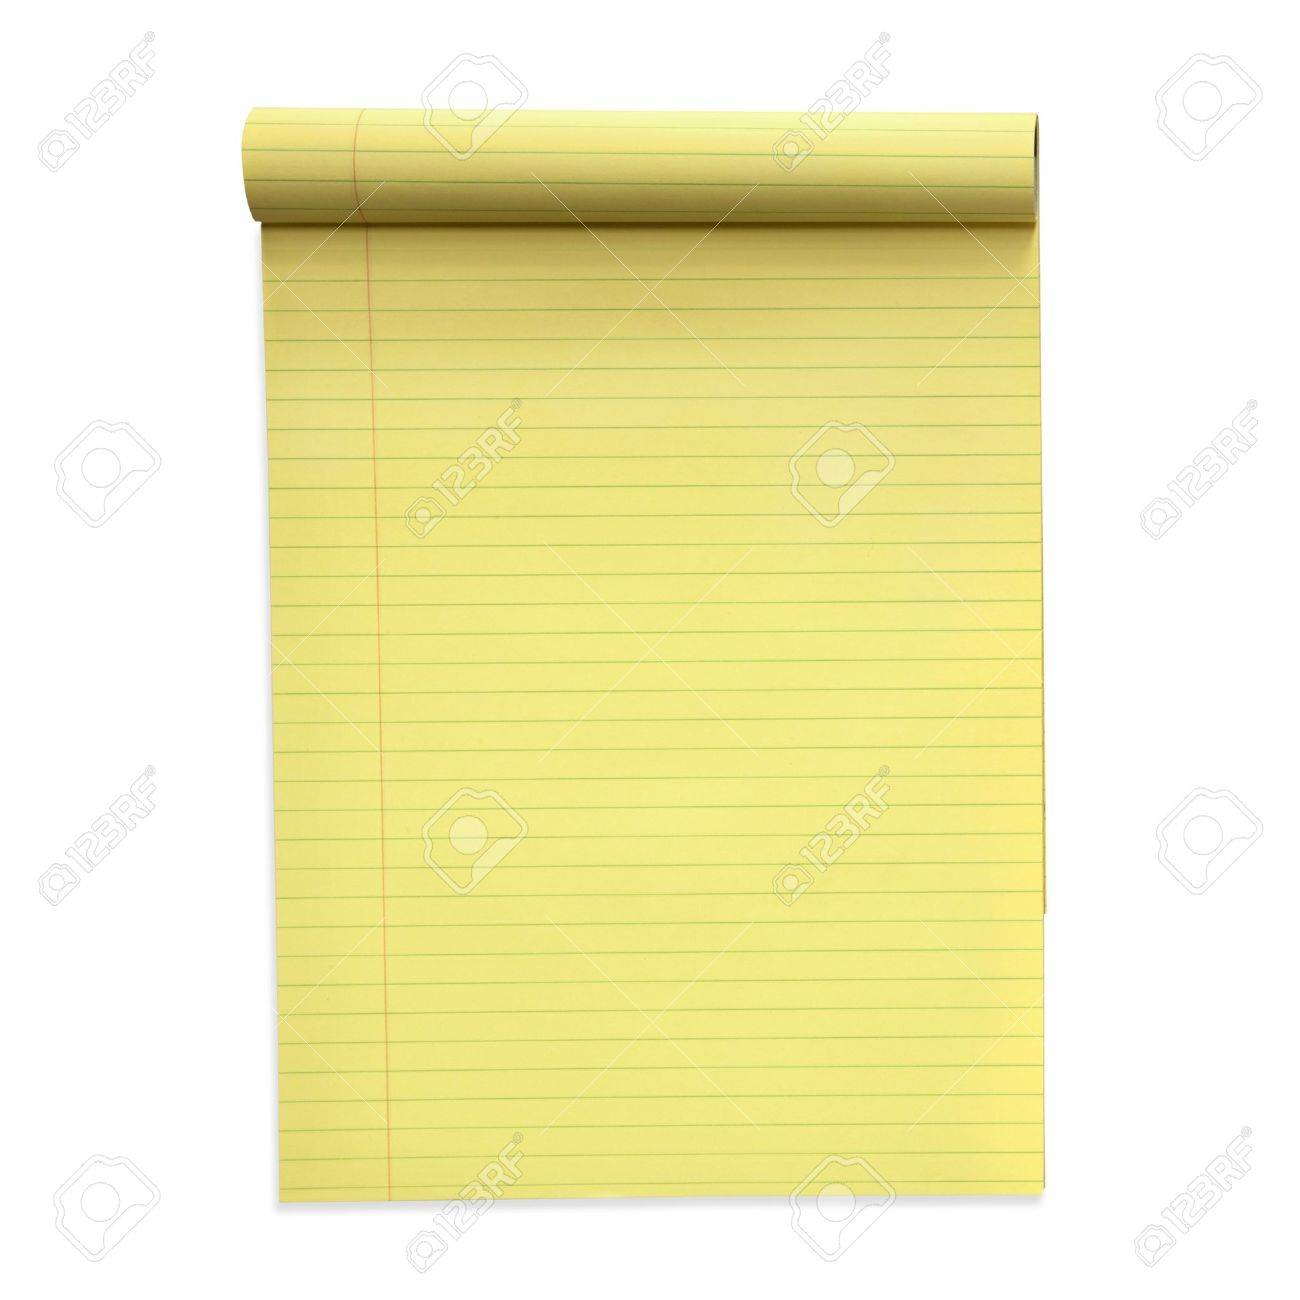 Yellow lined notepad, isolated on white.  Clipping path included. Stock Photo - 9887862